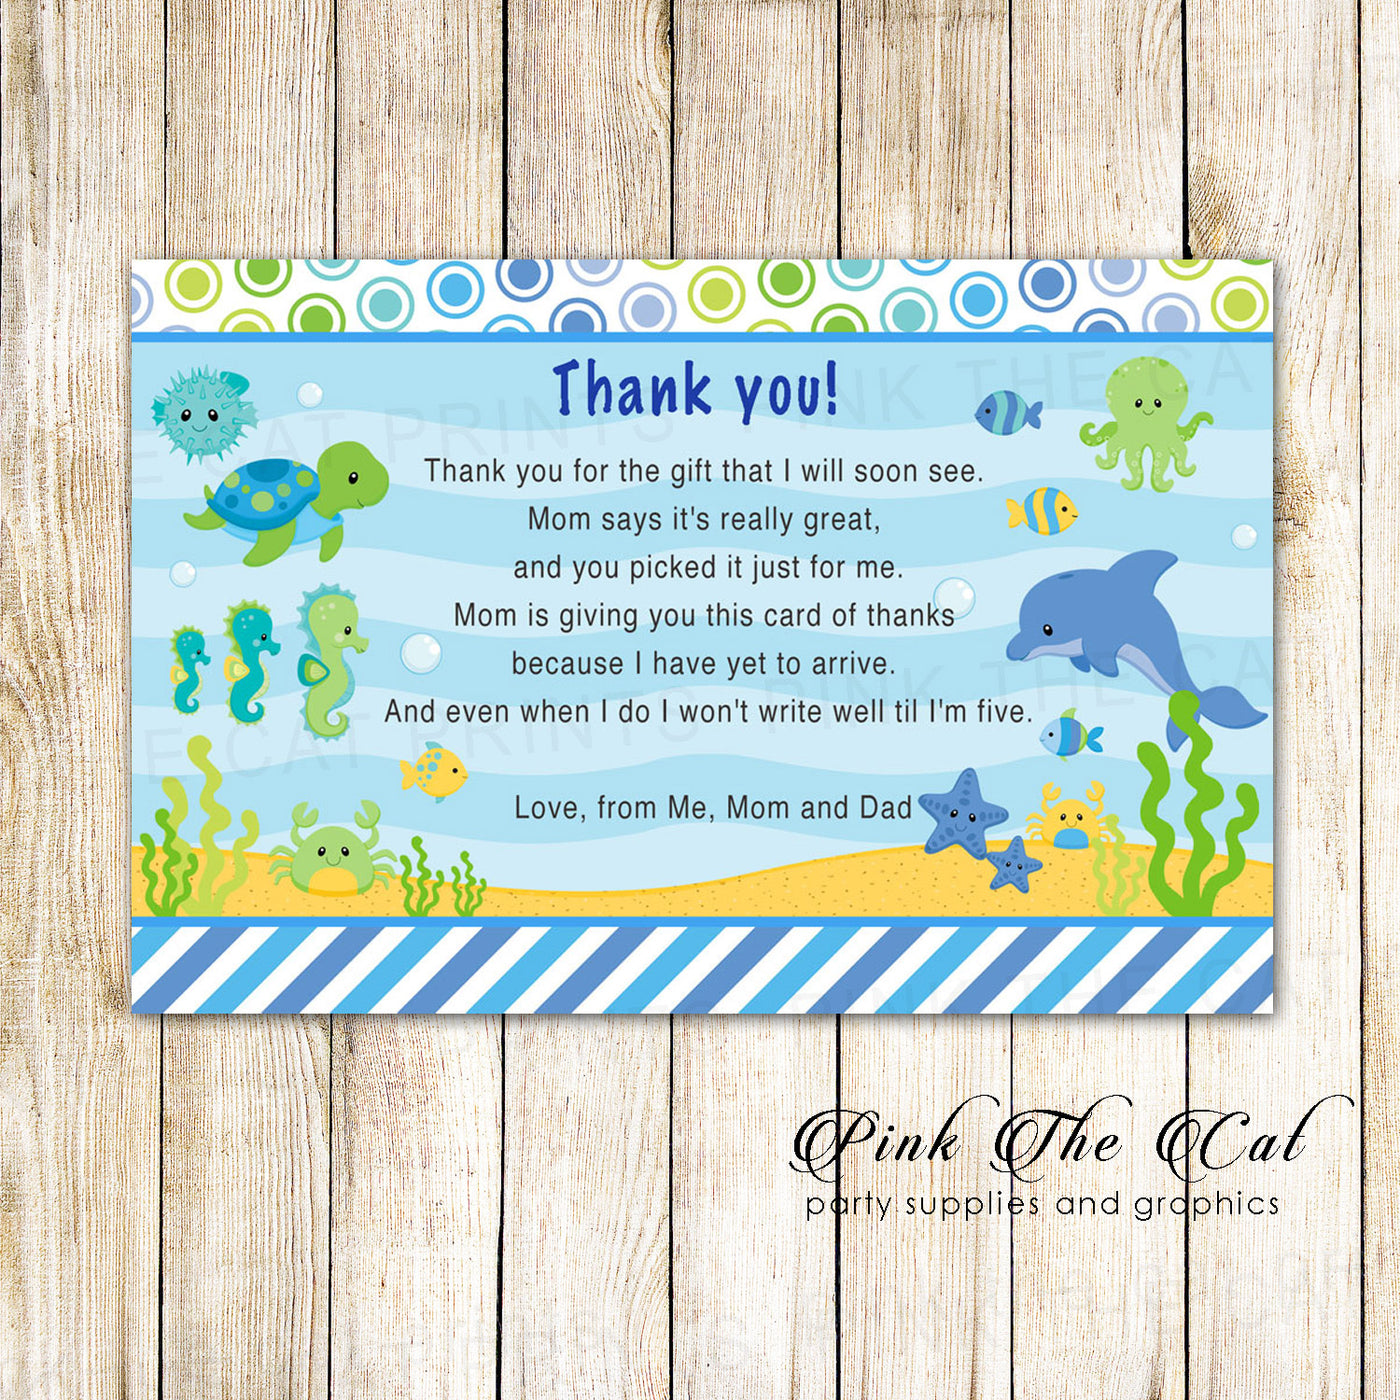 image regarding Under the Sea Printable named Aquarium below the sea thank by yourself playing cards youngster shower printable